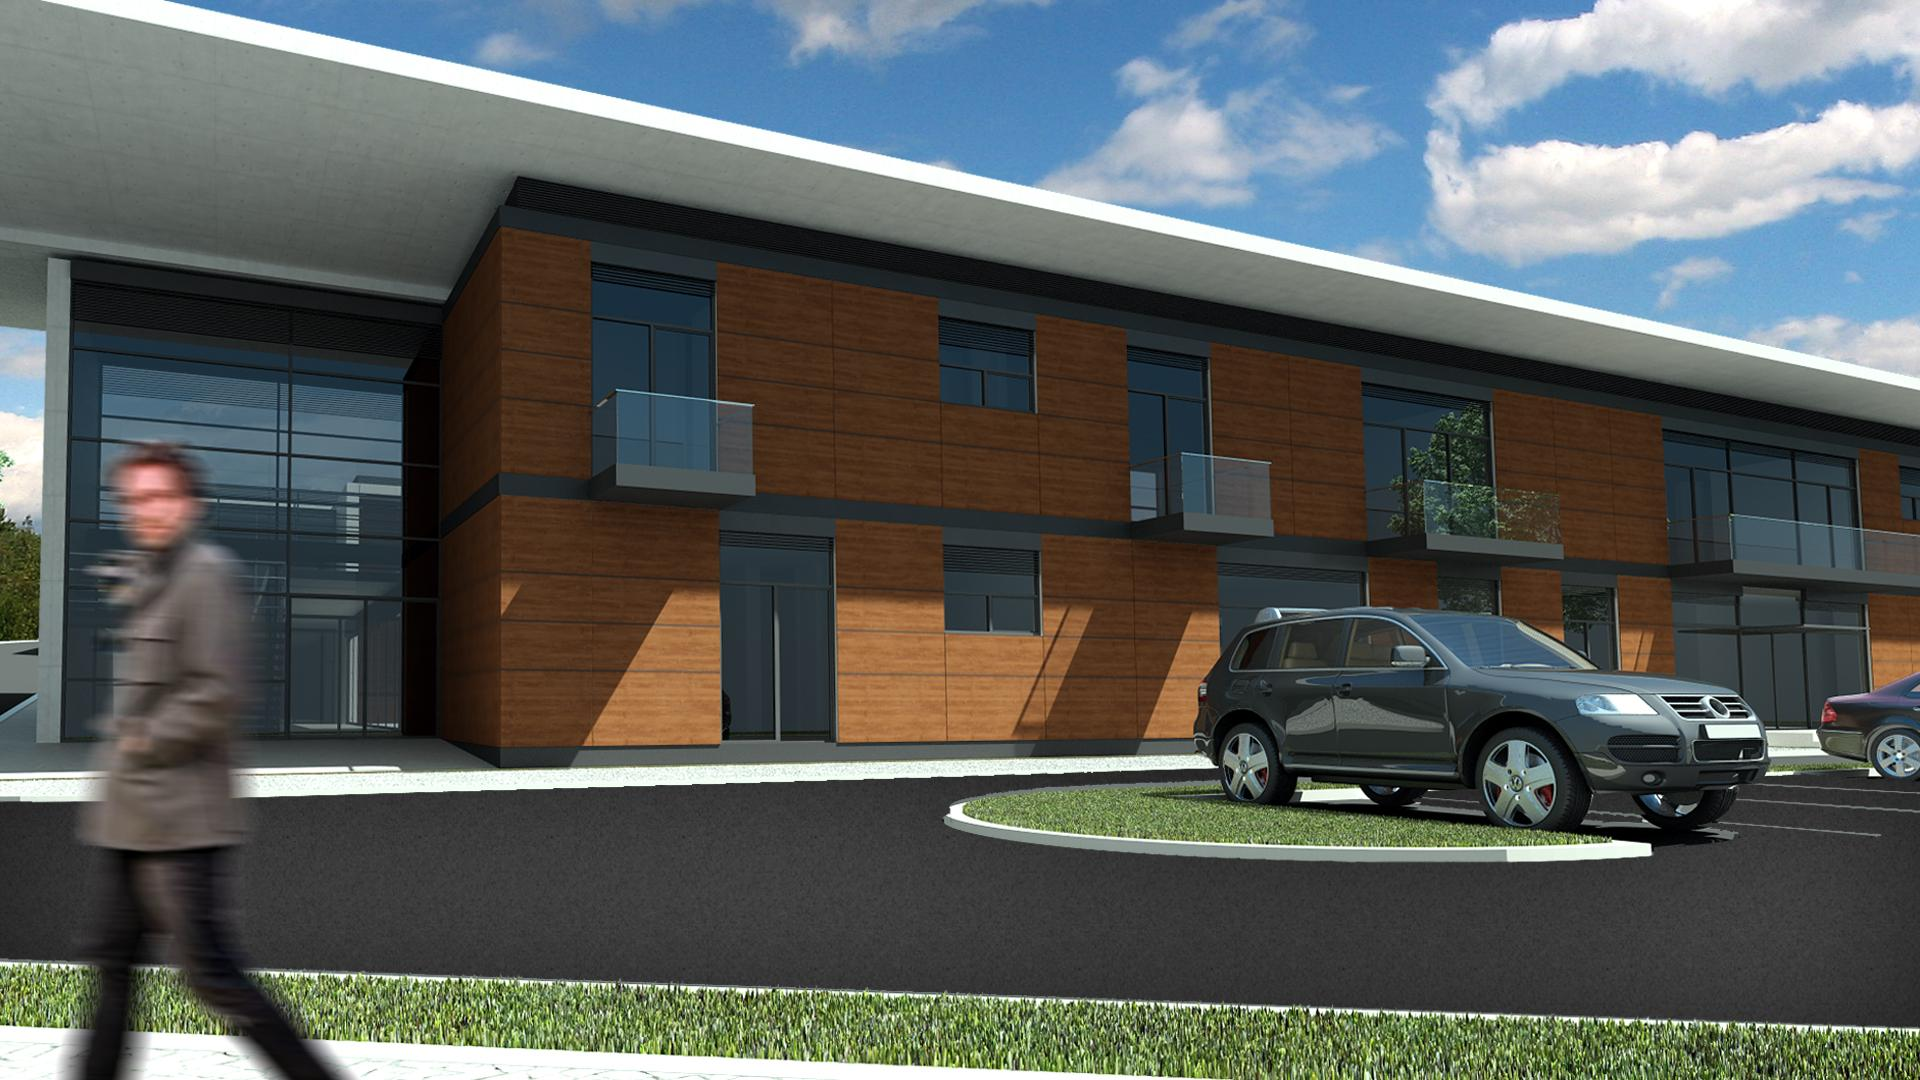 Architectural project of a long-term acute care facility